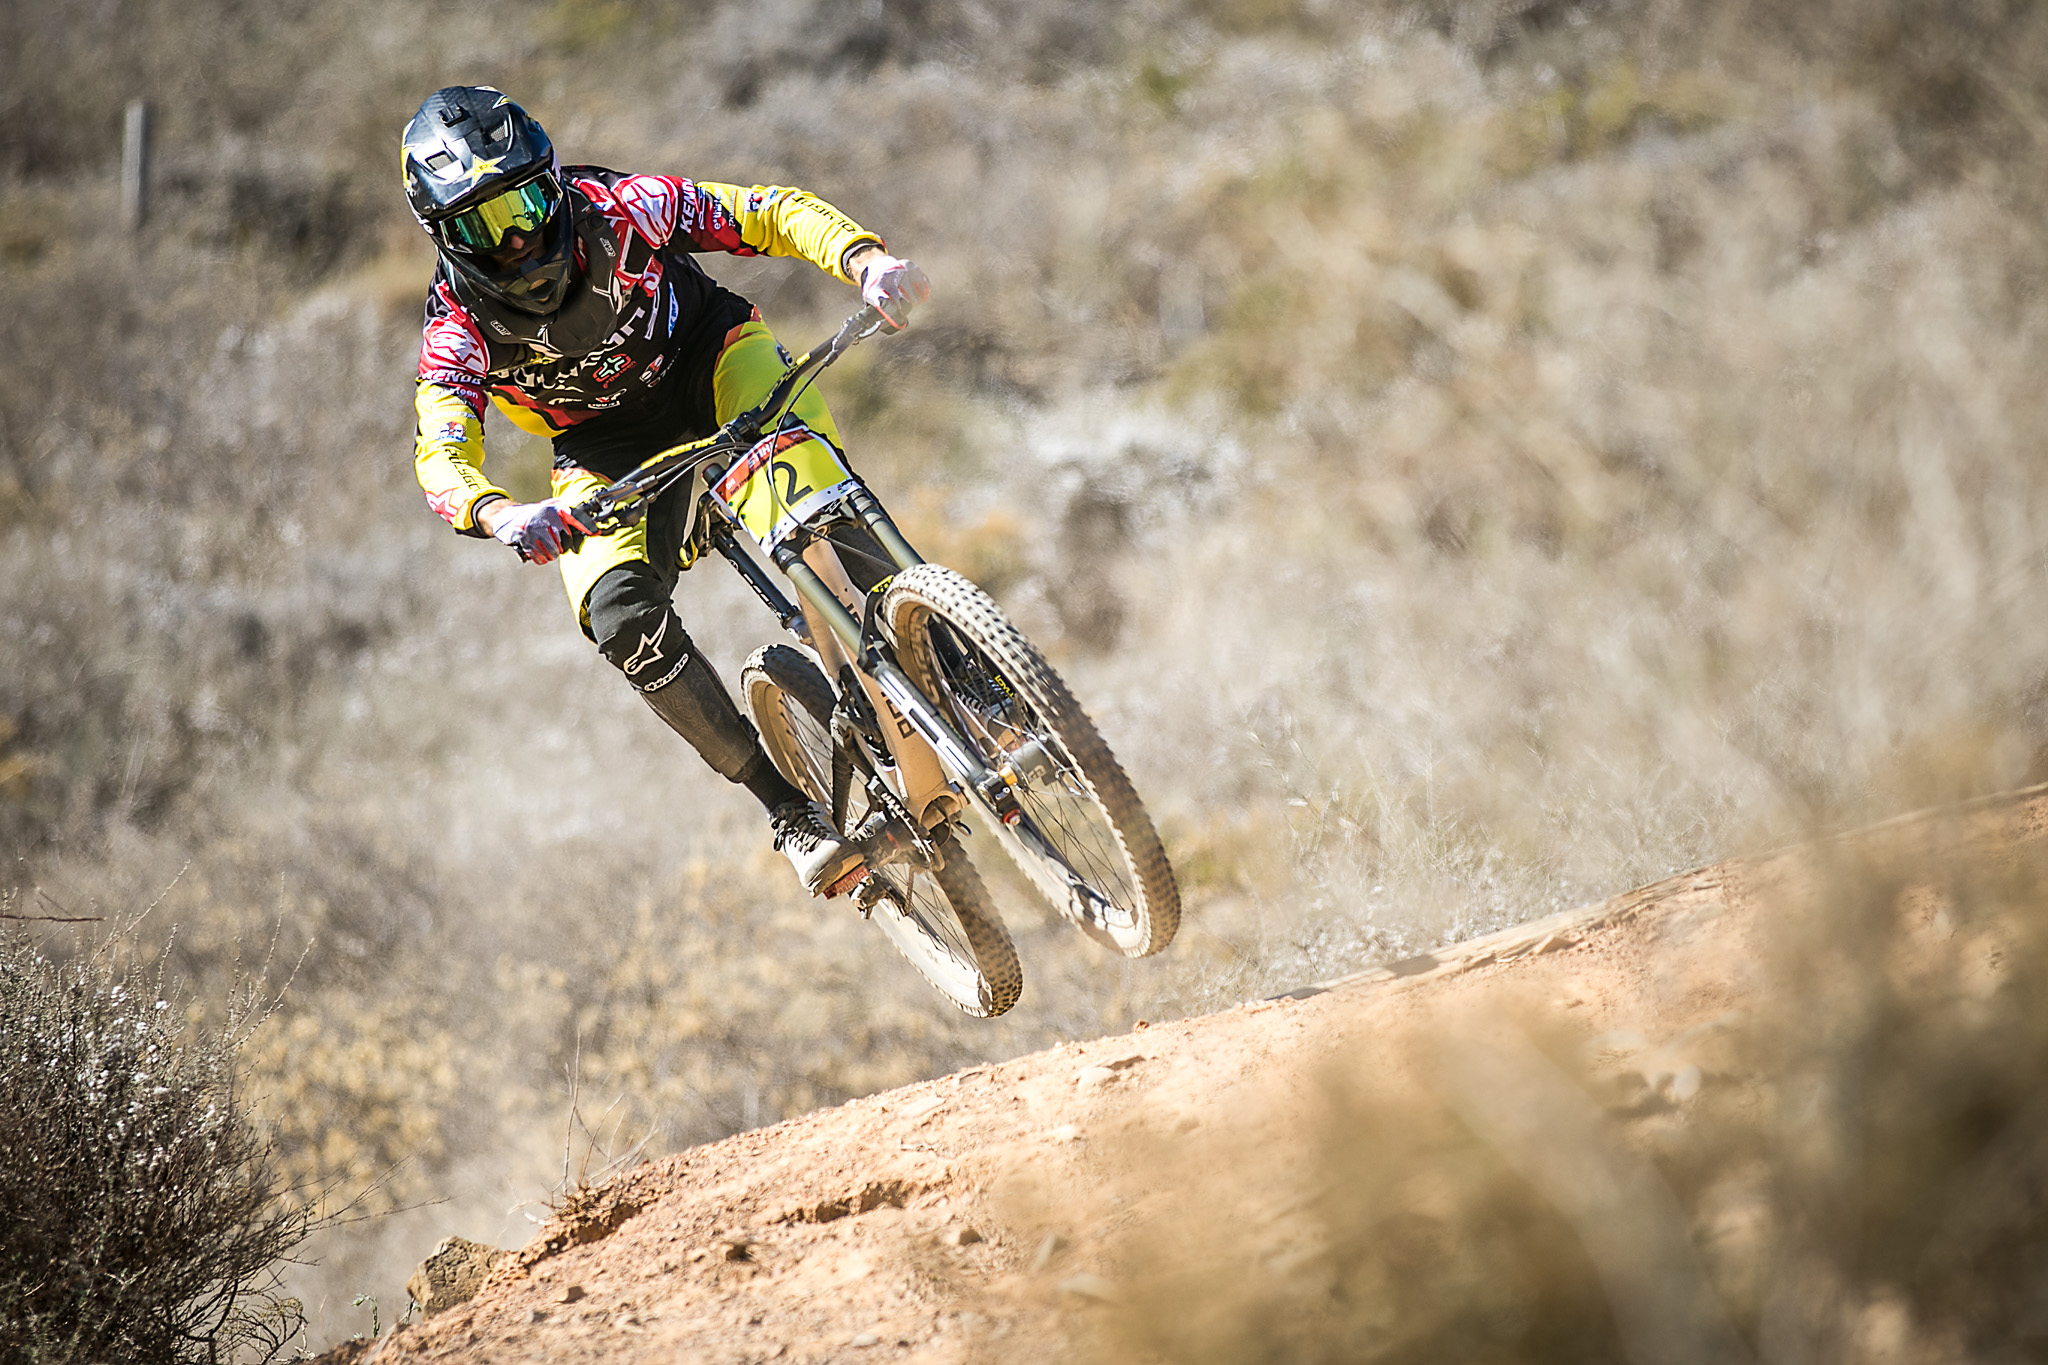 Andrew Neethling, who came secondoverall in the Men's Elite race at t he Stihl 2015 SA MTB Cup Series which took place in Contermanskloof in the Western Cape on Sunday 22 February 2015. Chris Hitchcock | PhotoSport